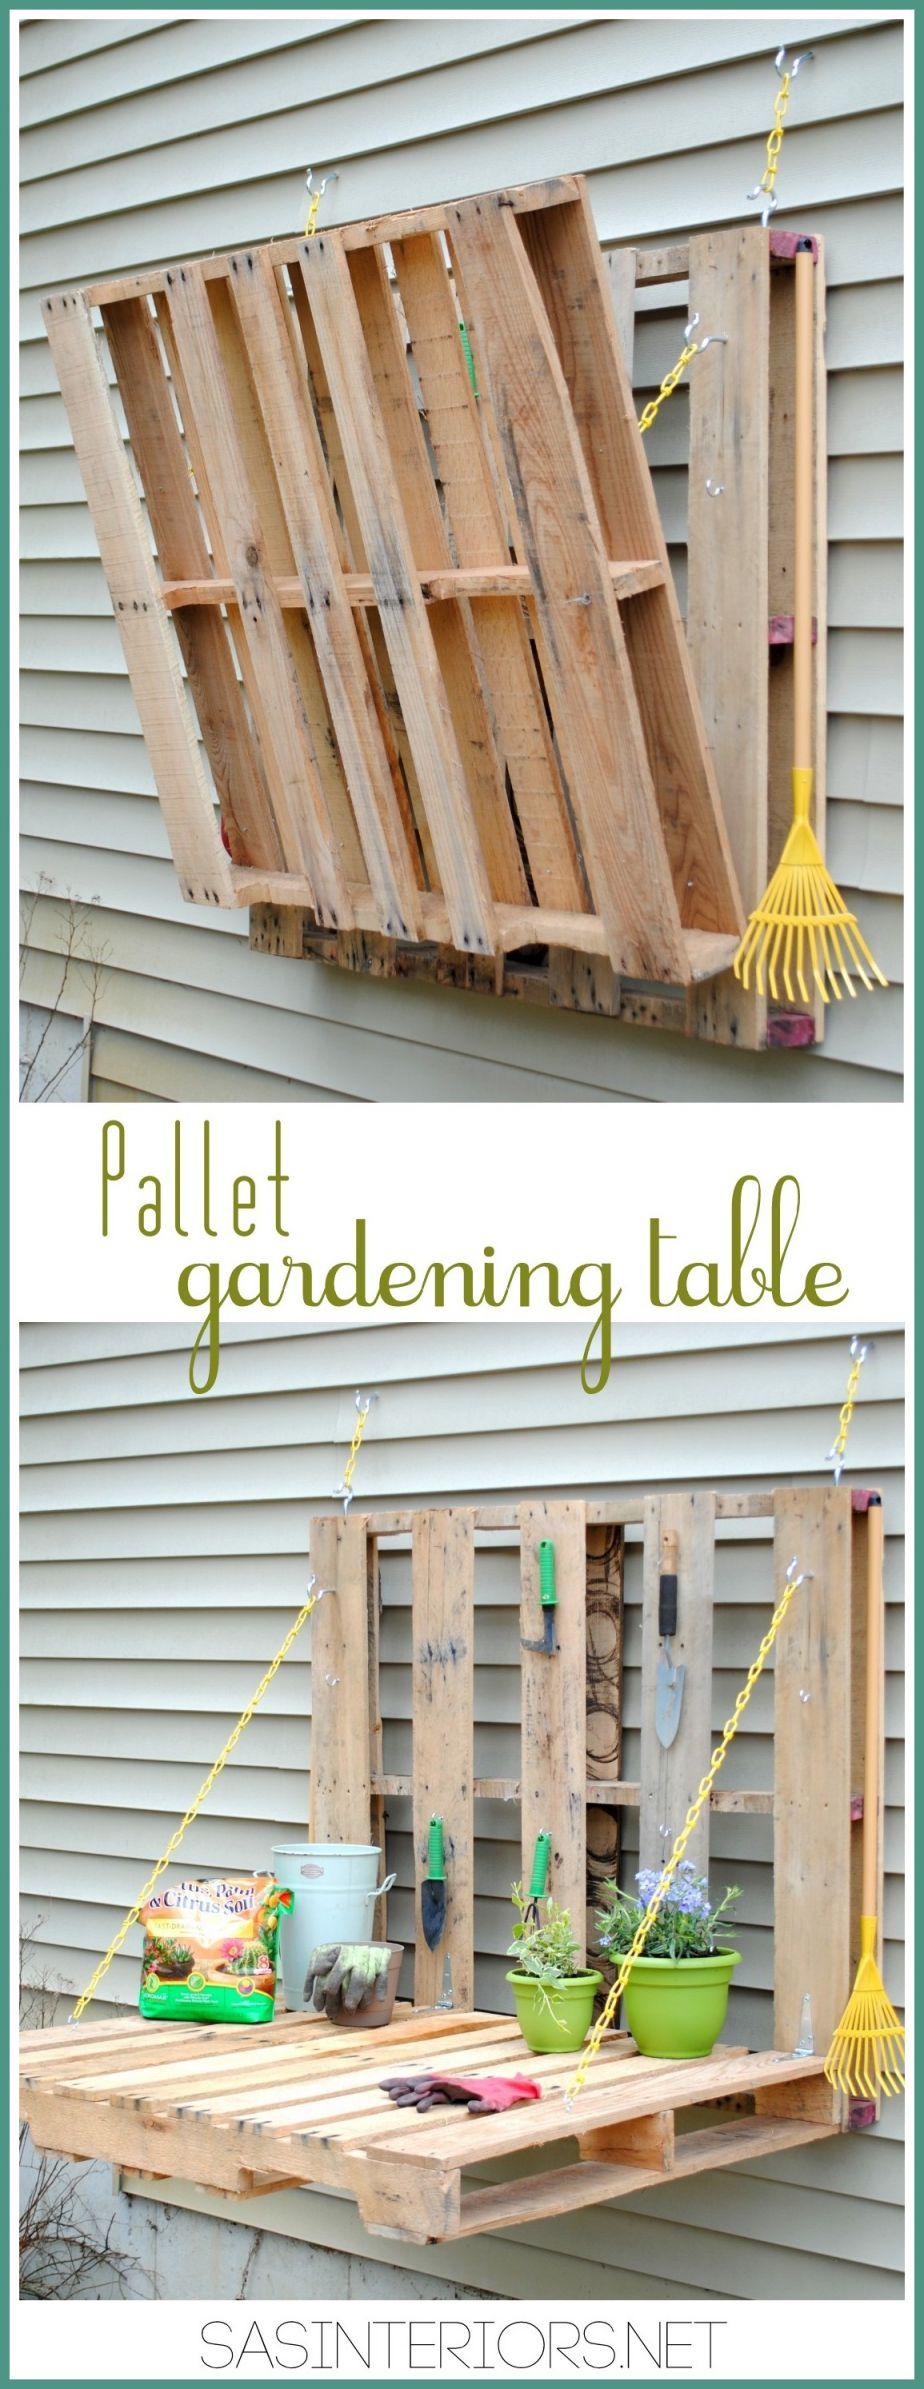 Beautiful diy pallets ideas